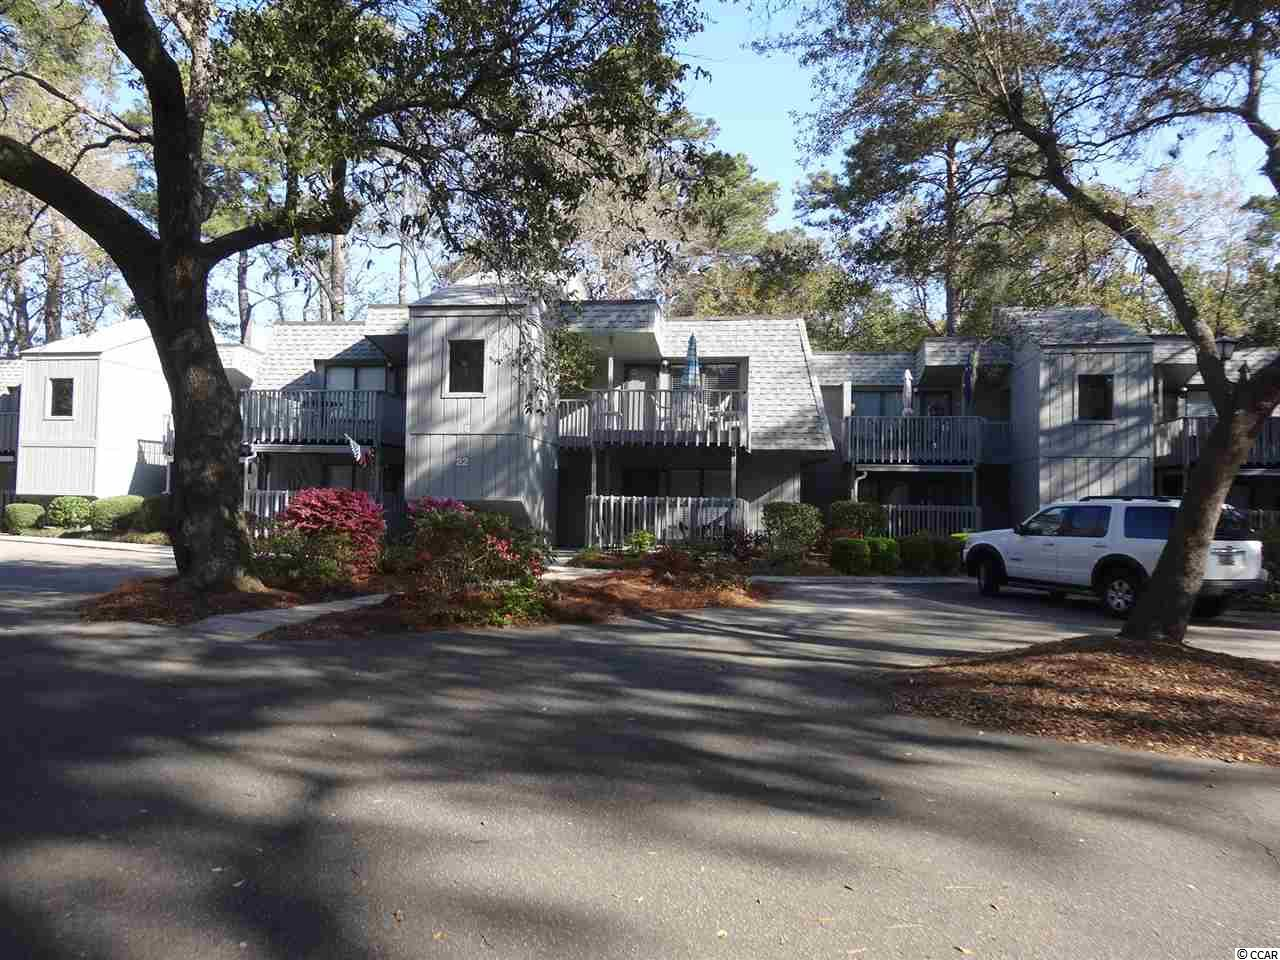 First floor unit with 2 bedrooms and 2 baths, plus patio. Selling furnished with exception of personal items. Salt Marsh Cove is a well established community located on the creekside of Litchfield Mainland and is conveniently located to beach (5 minutes!), shopping, and restaurants. The grounds are beautifully maintained and there is a community dock on the creek, and a pool with clubhouse.